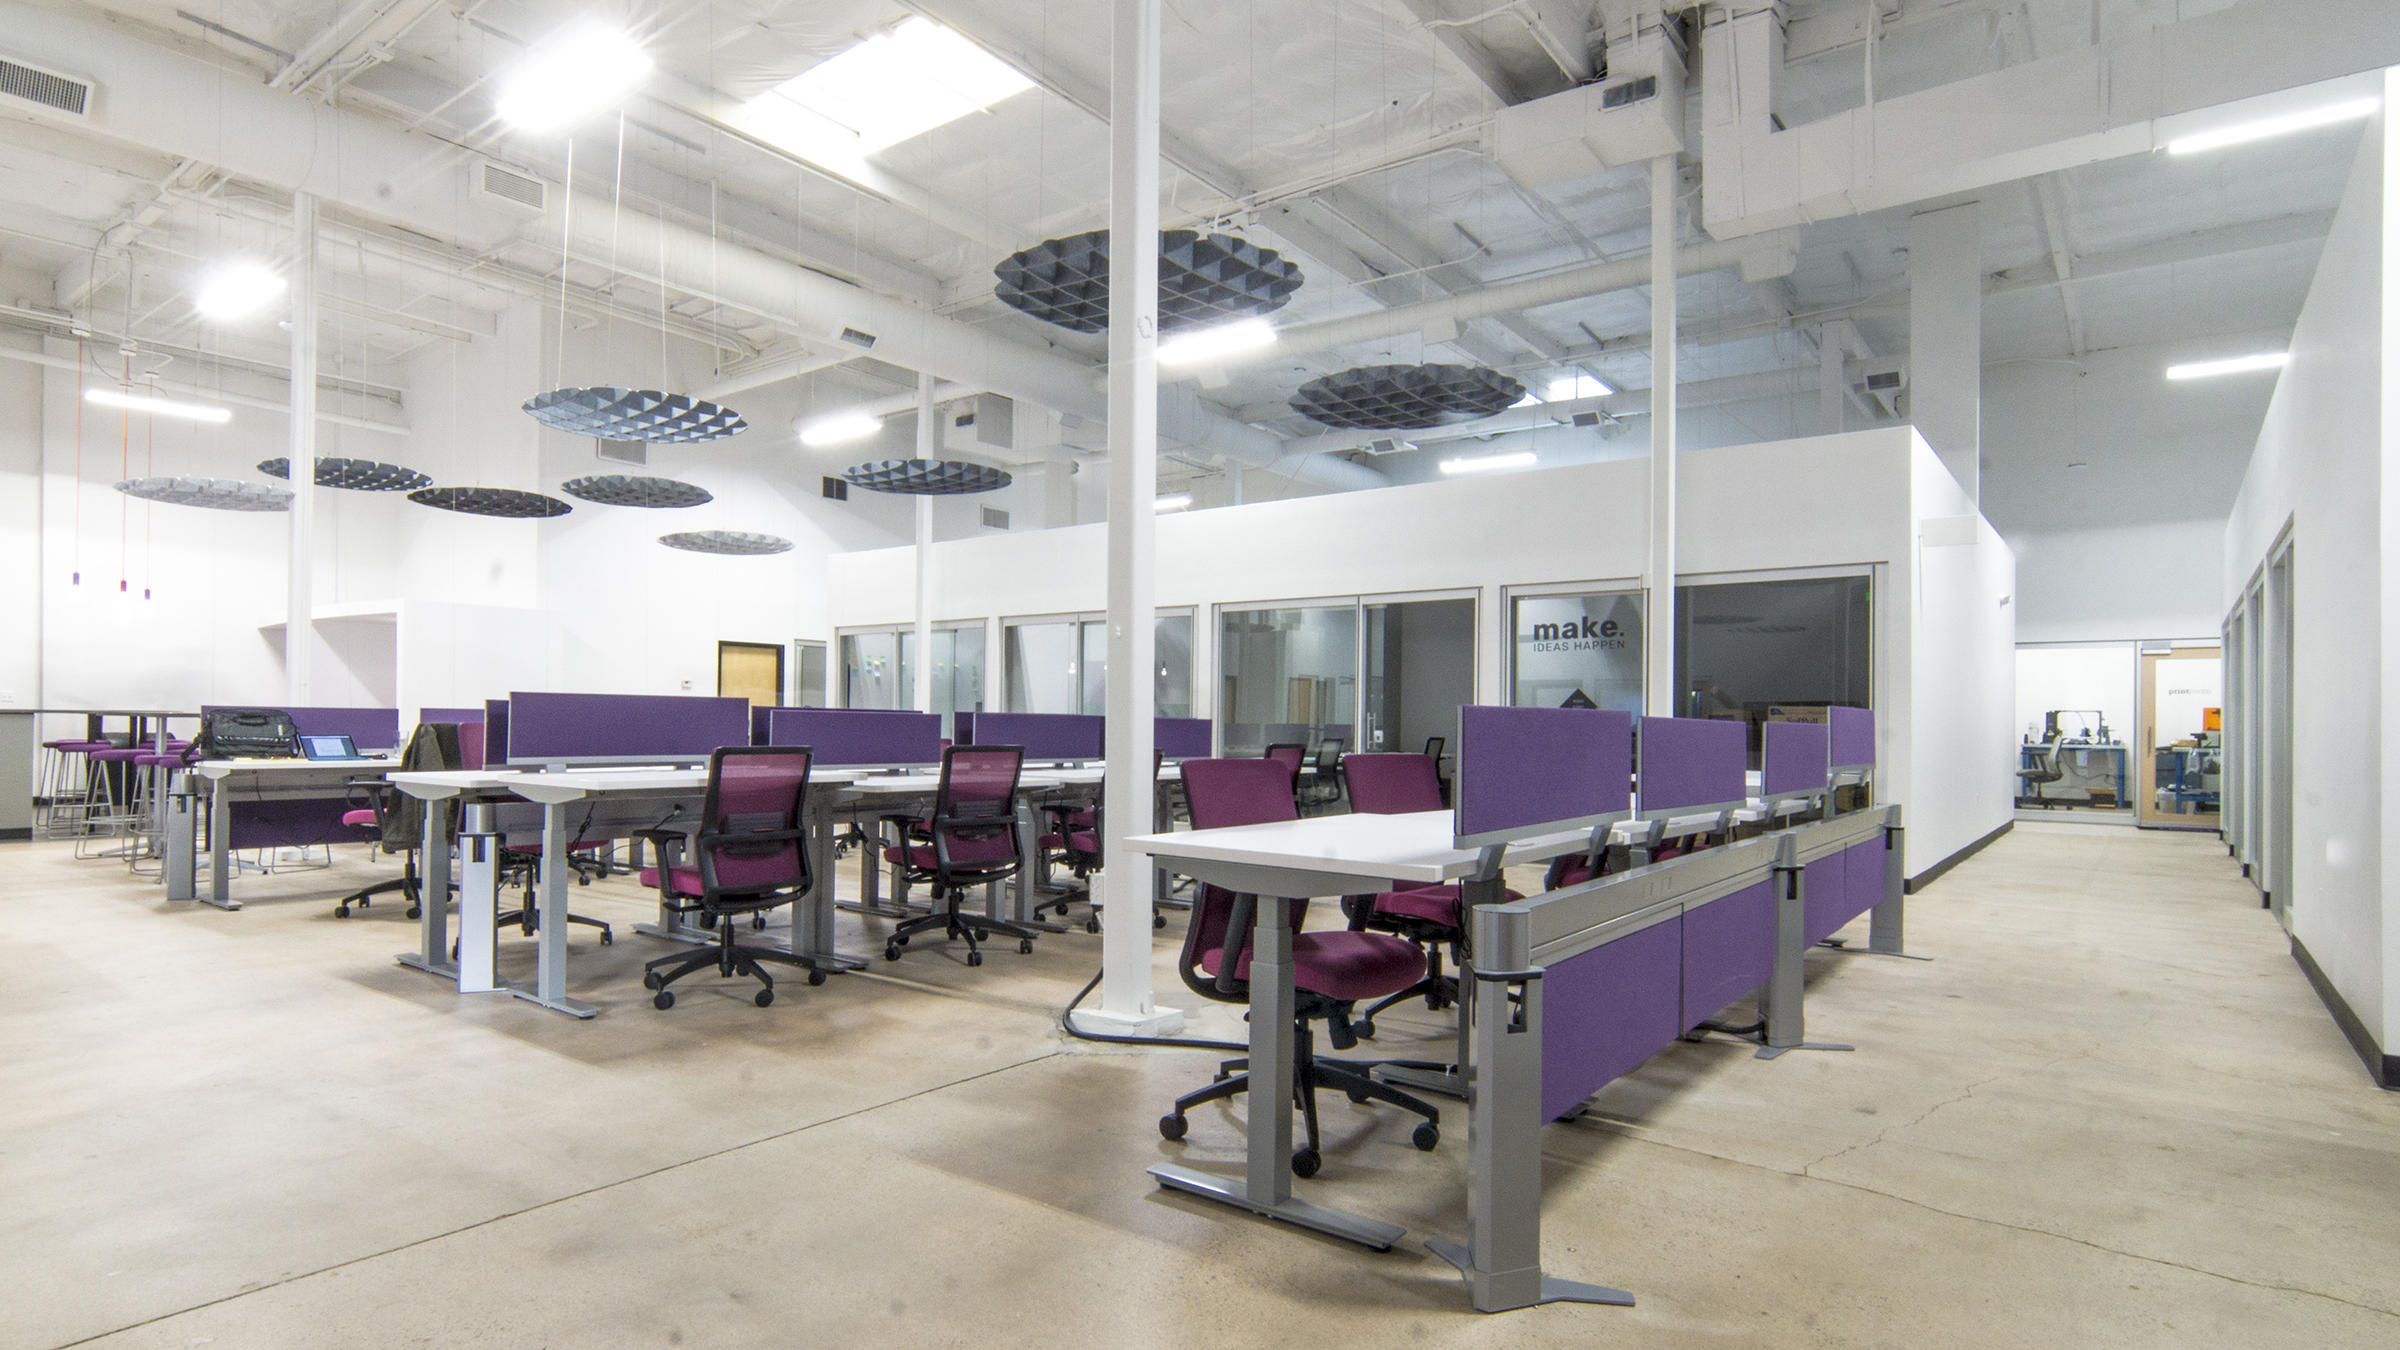 Being a co-working and co-making space, our client wanted to make sure that different levels of desking space were provided to members. Three desking types provided by  IE Connect  were included: open office tables, sit/stand workstations, and sit/stand desks in private offices.  Allsteel Aware ,  Further , and  Altitude  systems allowed for continuity between finishes while providing each option with the needed components. At the offices,  Allsteel Beyond  architectural wall fronts were incorporated to give an open, light feel to each.